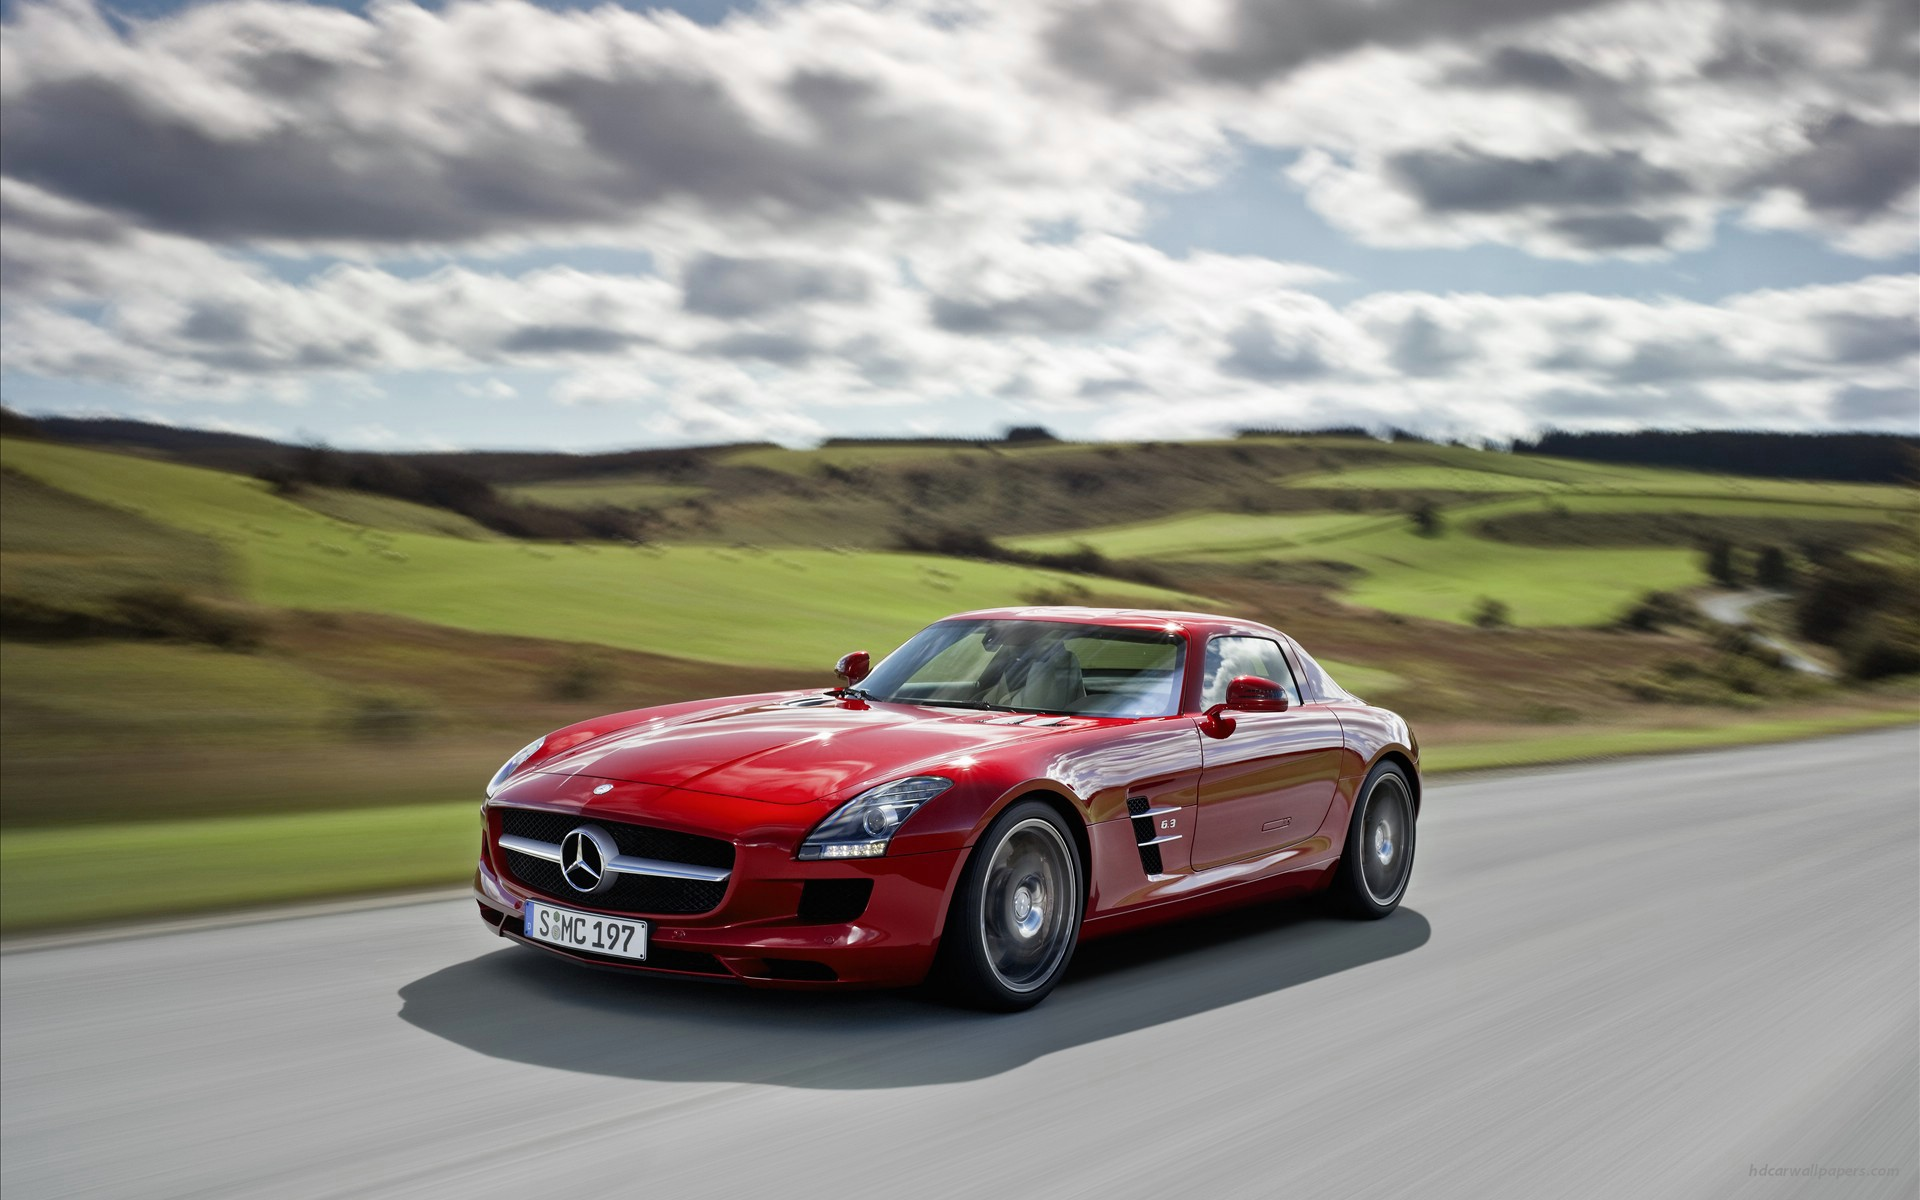 Mercedes HD Wallpapers - WallpaperSafari